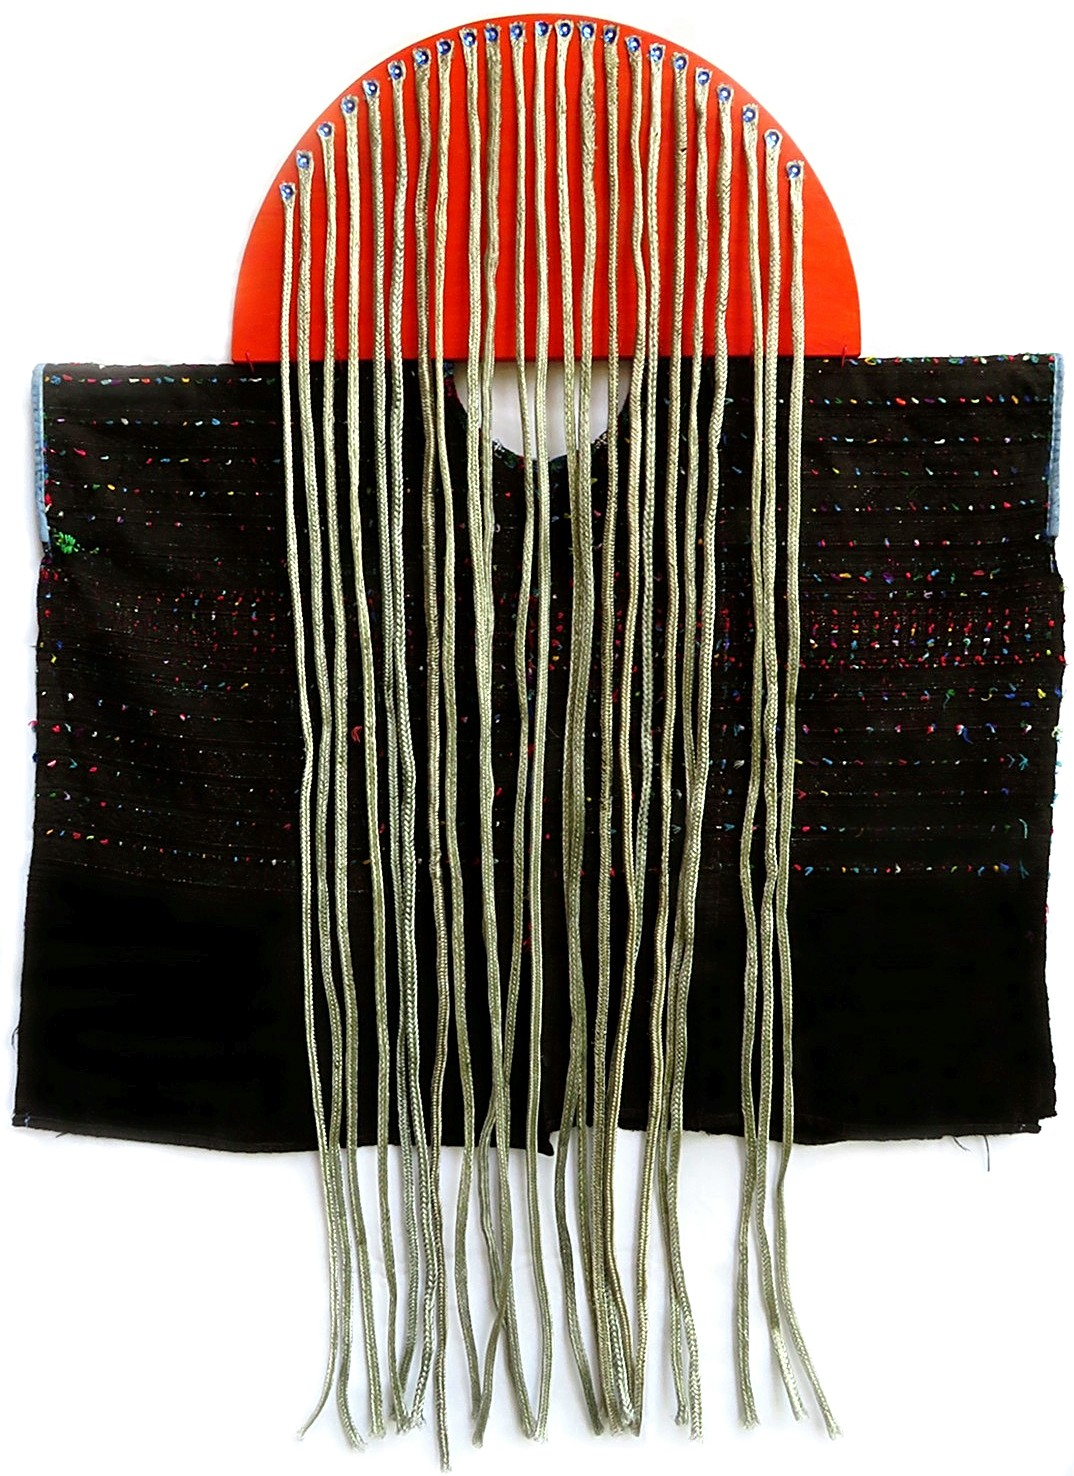 HAIRY TIMES: AT LOOSE ENDS #2  2019 ~ 30 x 40 x 2 inches ~ Available  Metal braided cable sleeving, sequins, nails, used Guatemalan huipil, reclaimed wood, acrylic paint